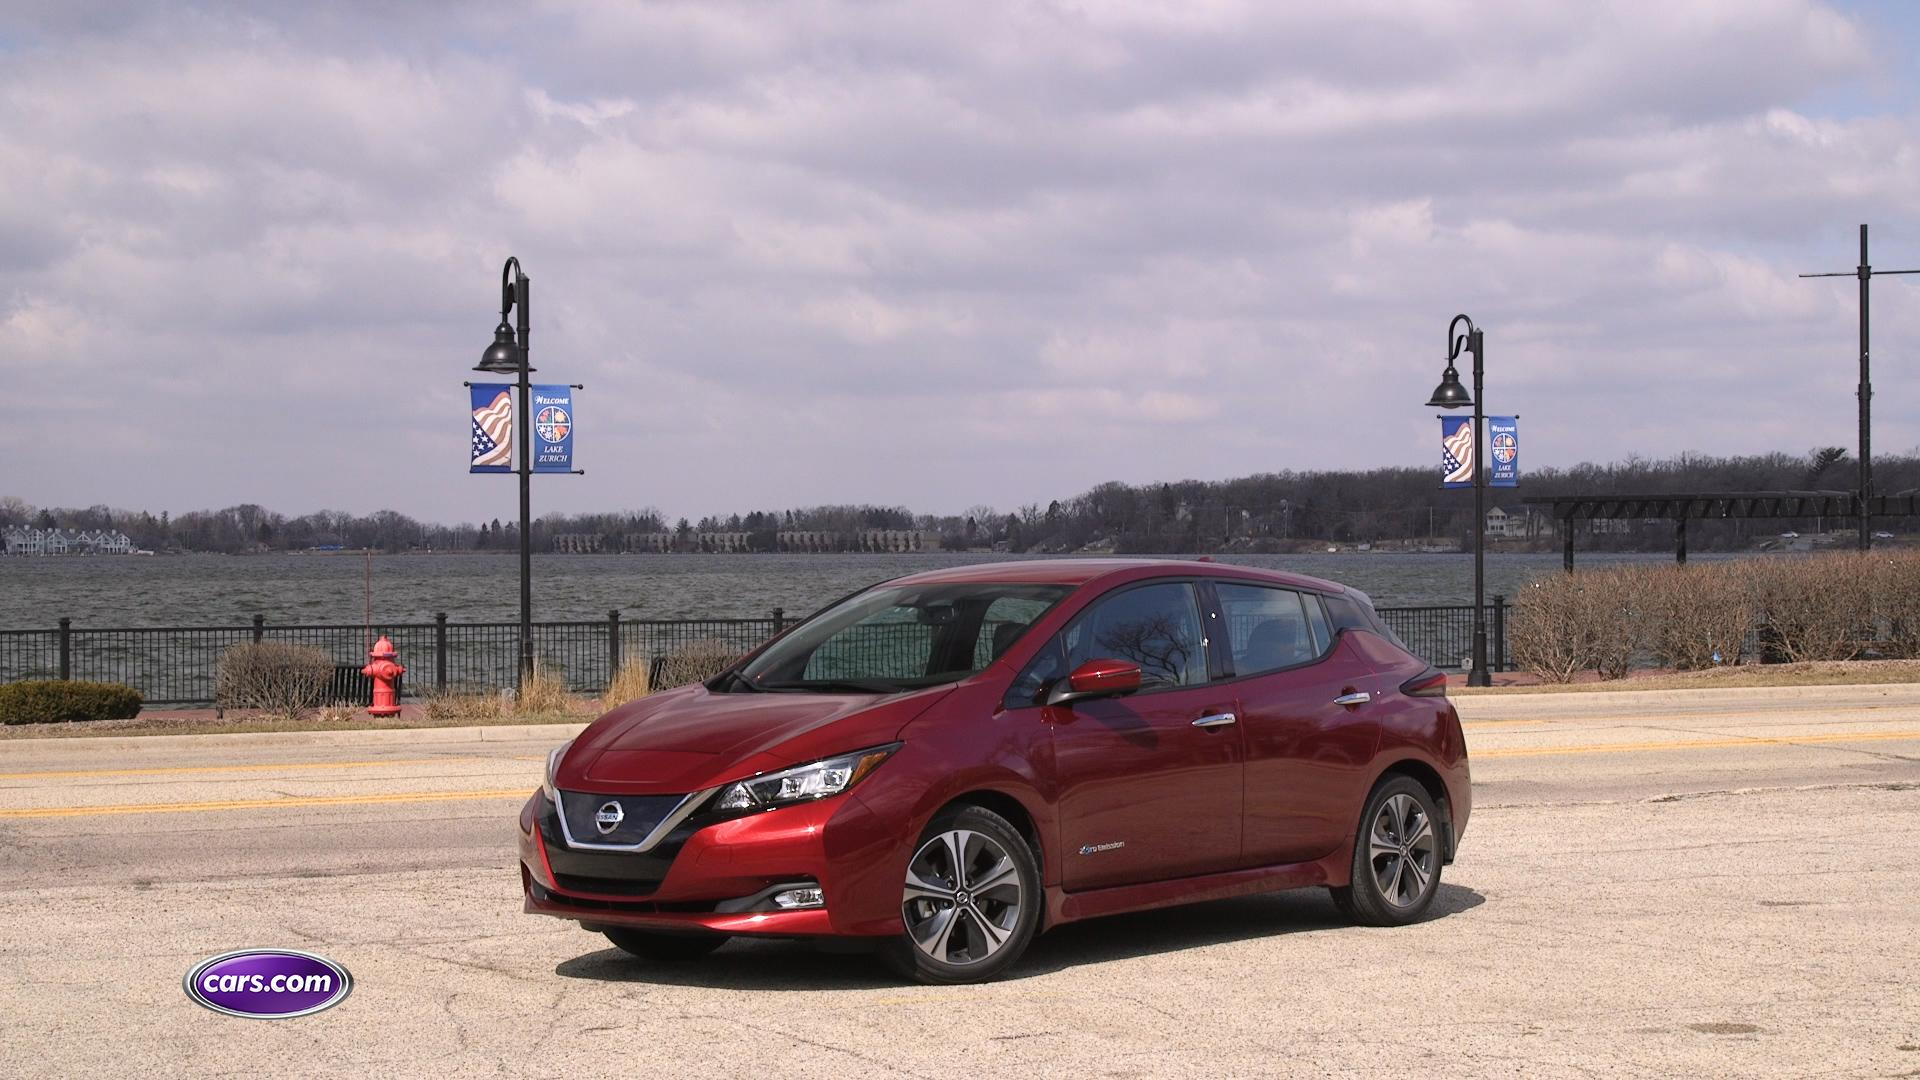 Video: 2018 Nissan Leaf: Review – Cars.com